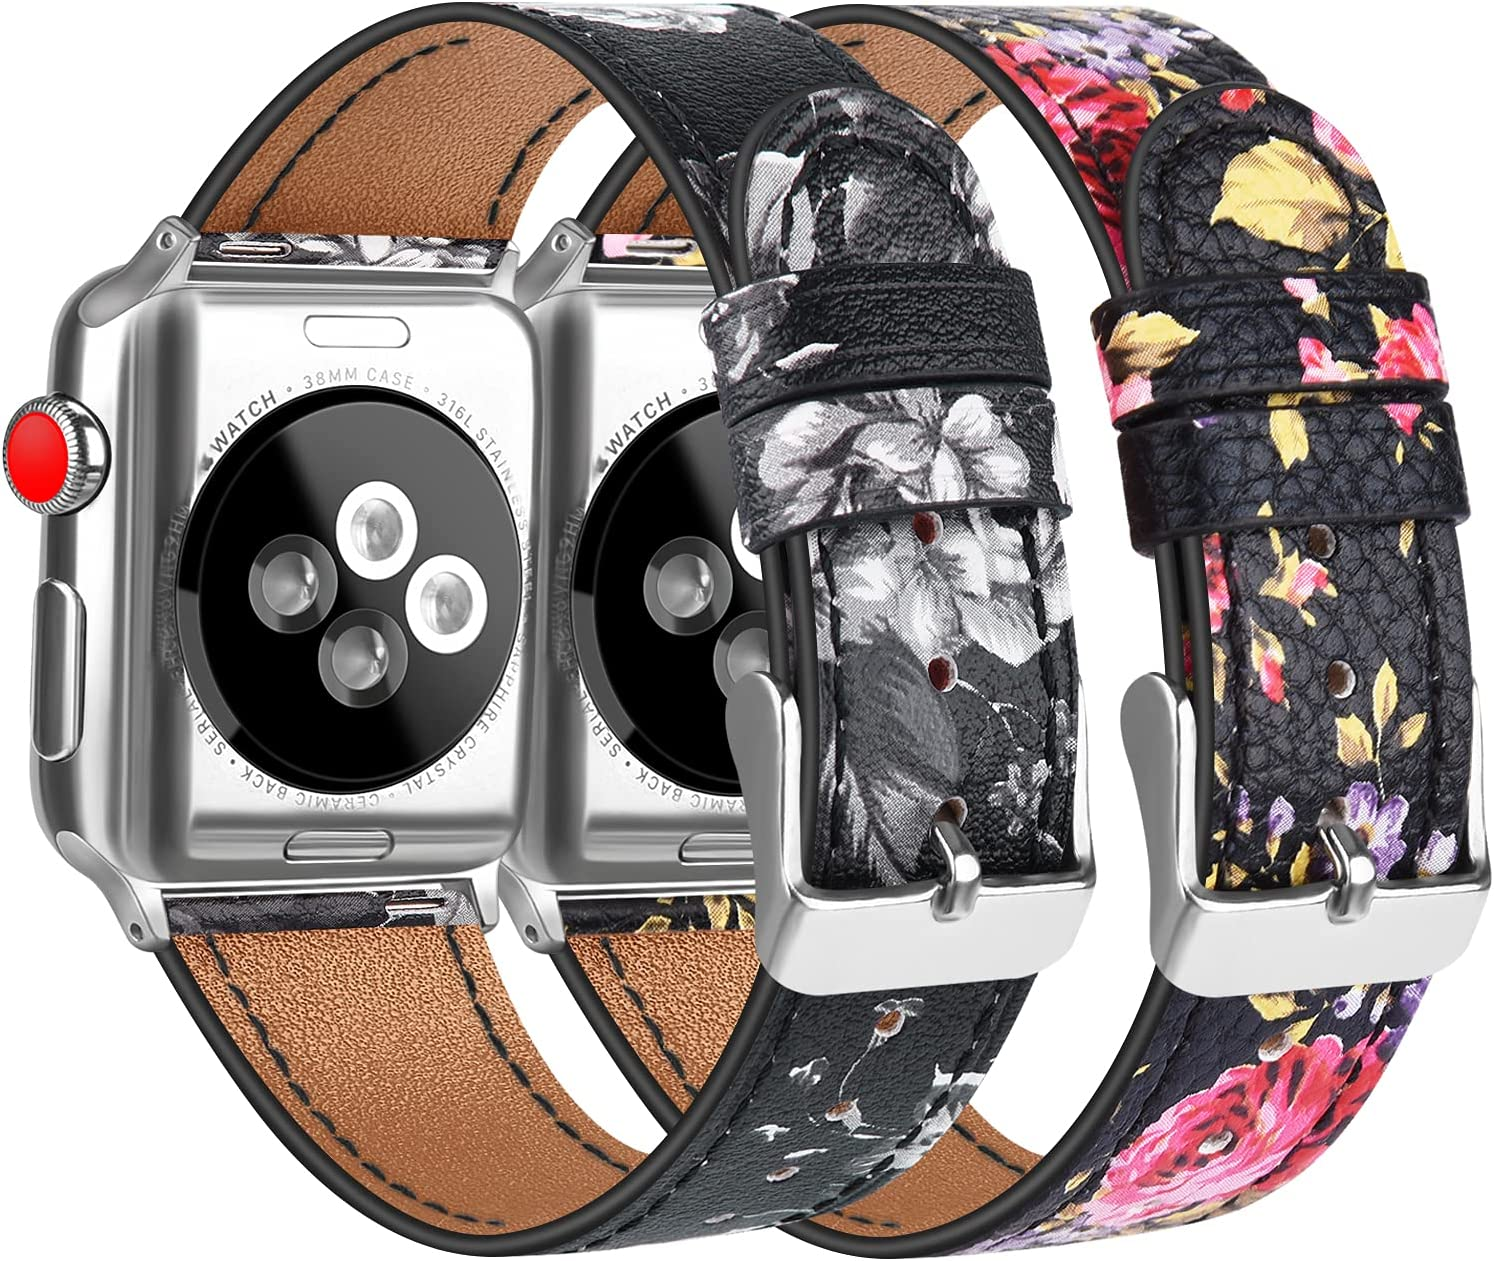 [2 Pack] Leather Bands Compatible with Apple Watch Bands 44mm for Women Men, Soft Leather Straps for iWatch SE & Series 6, Series 5, Series 4, Series 3, Series 2, Series 1, Flower Grey & Flower Pink